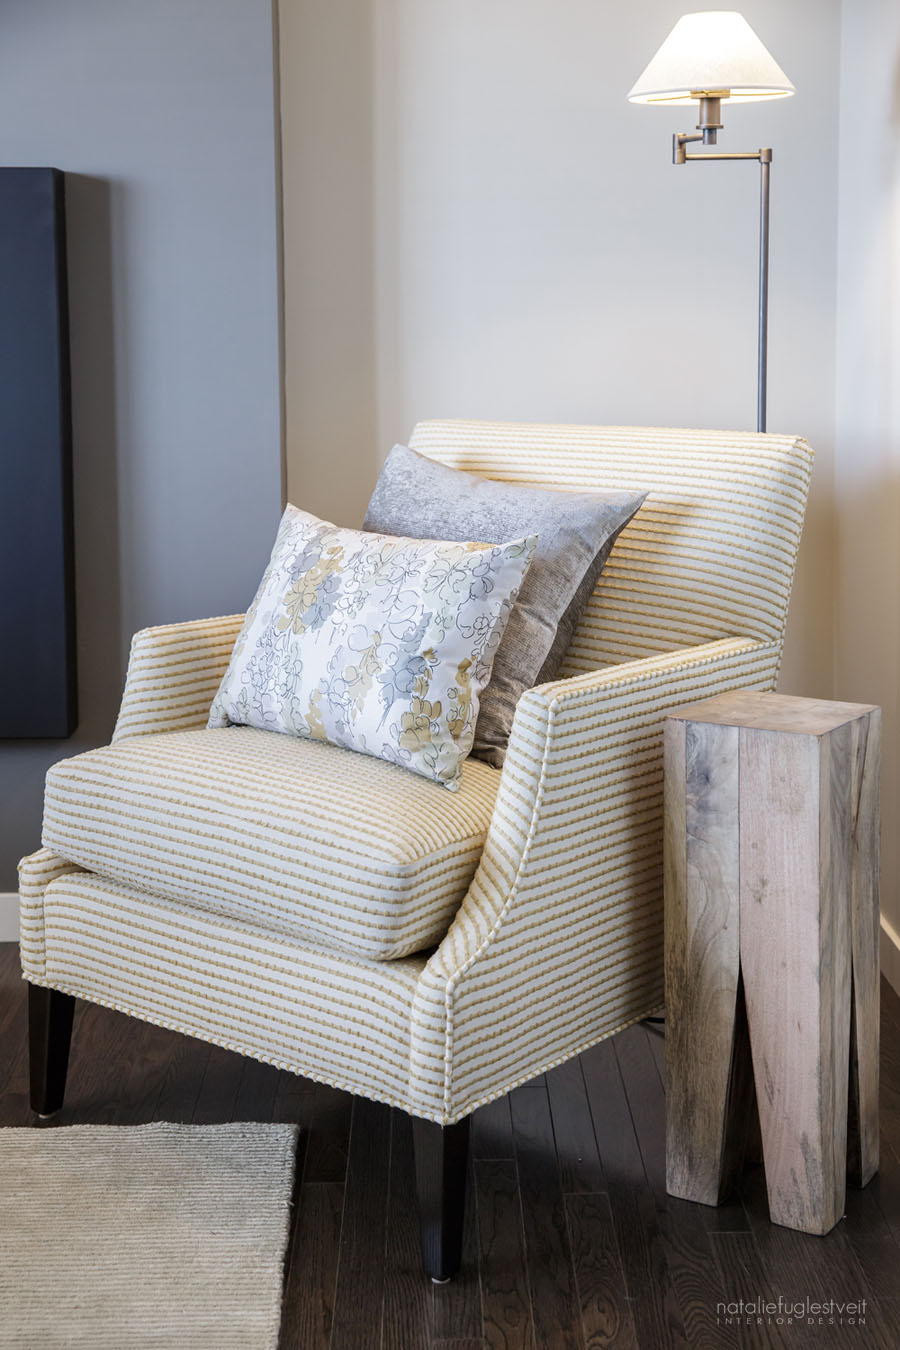 Silva 4 Home Lori Chair done by Calgary Interior Designer